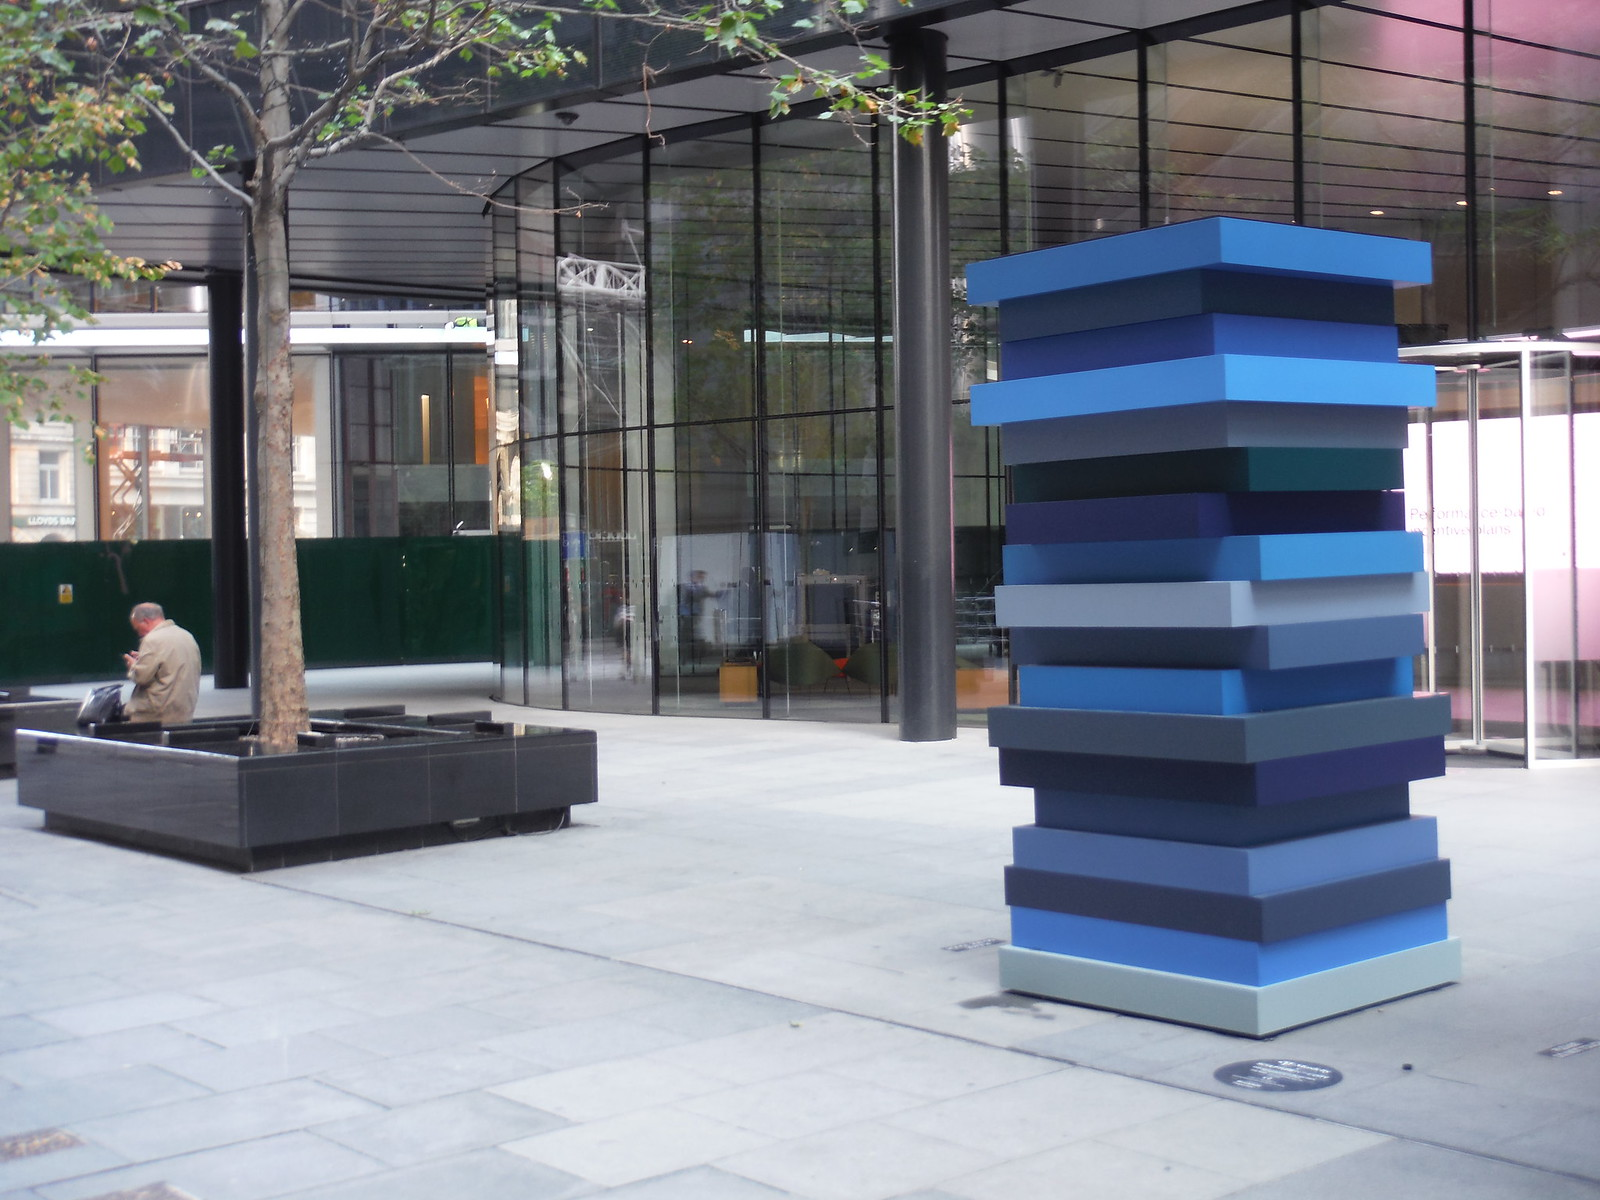 Sean Scully - Stack Blues SWC Walk Short 24 - Sculpture in the City